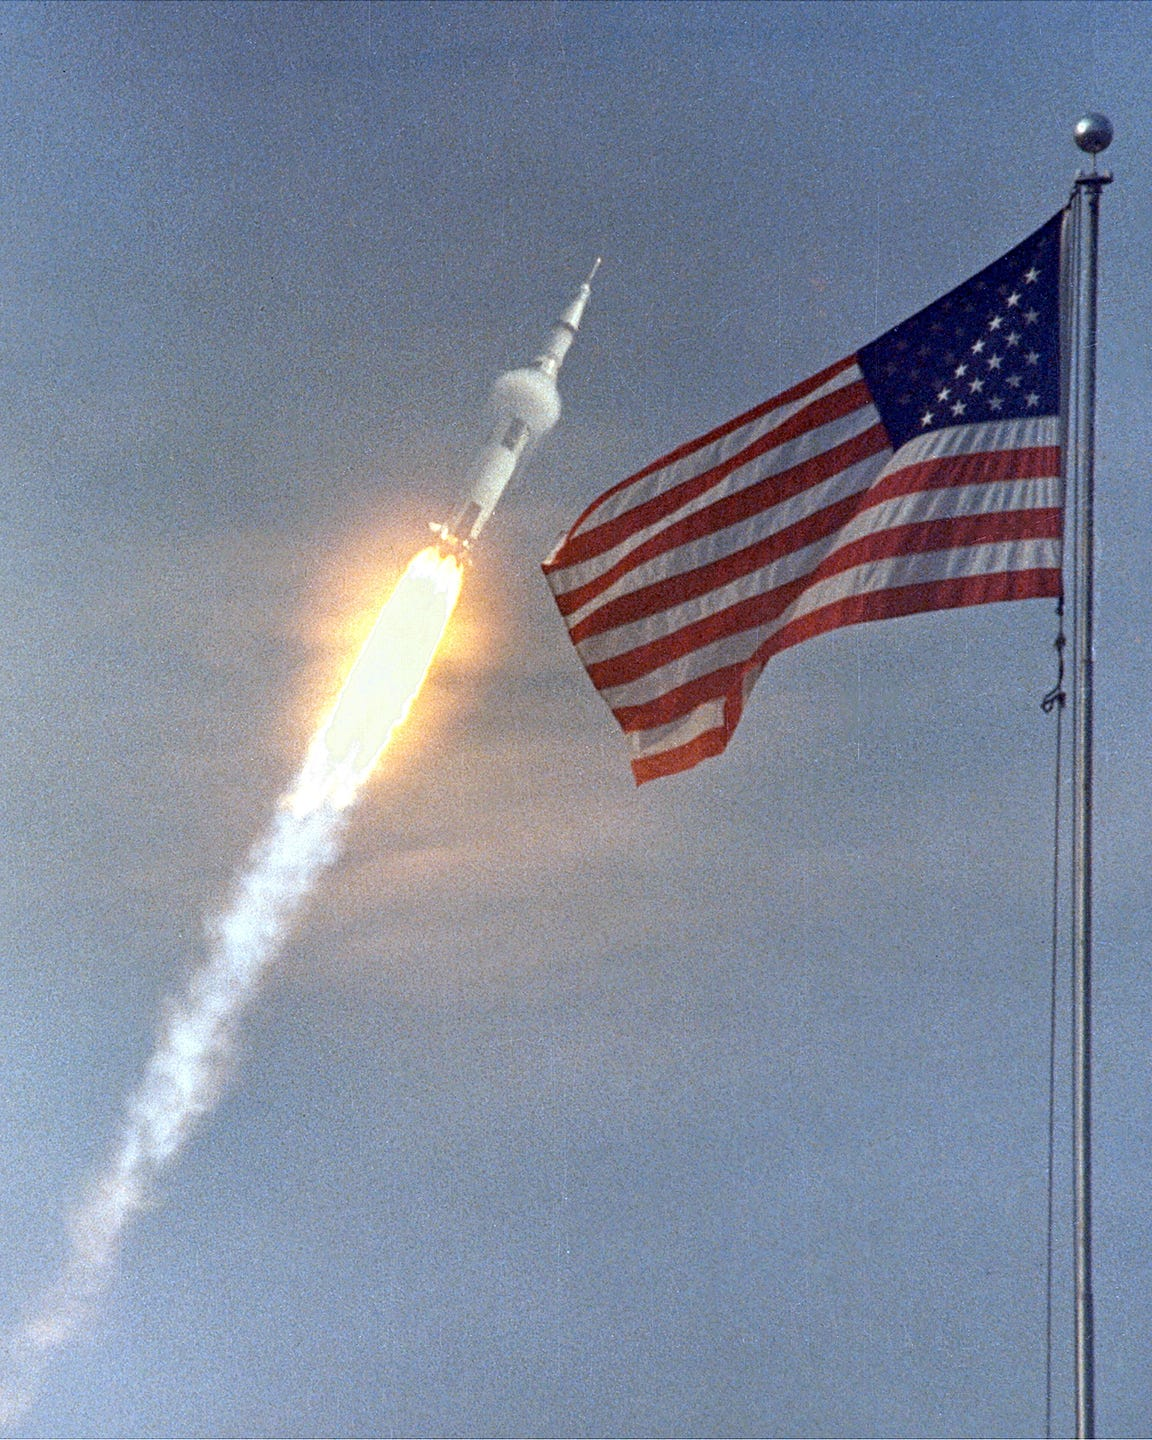 The Apollo 11 Saturn V rocket blasts off on July 16, 1969.  At takeoff, the rocket generated 7.6 million pounds of thrust.